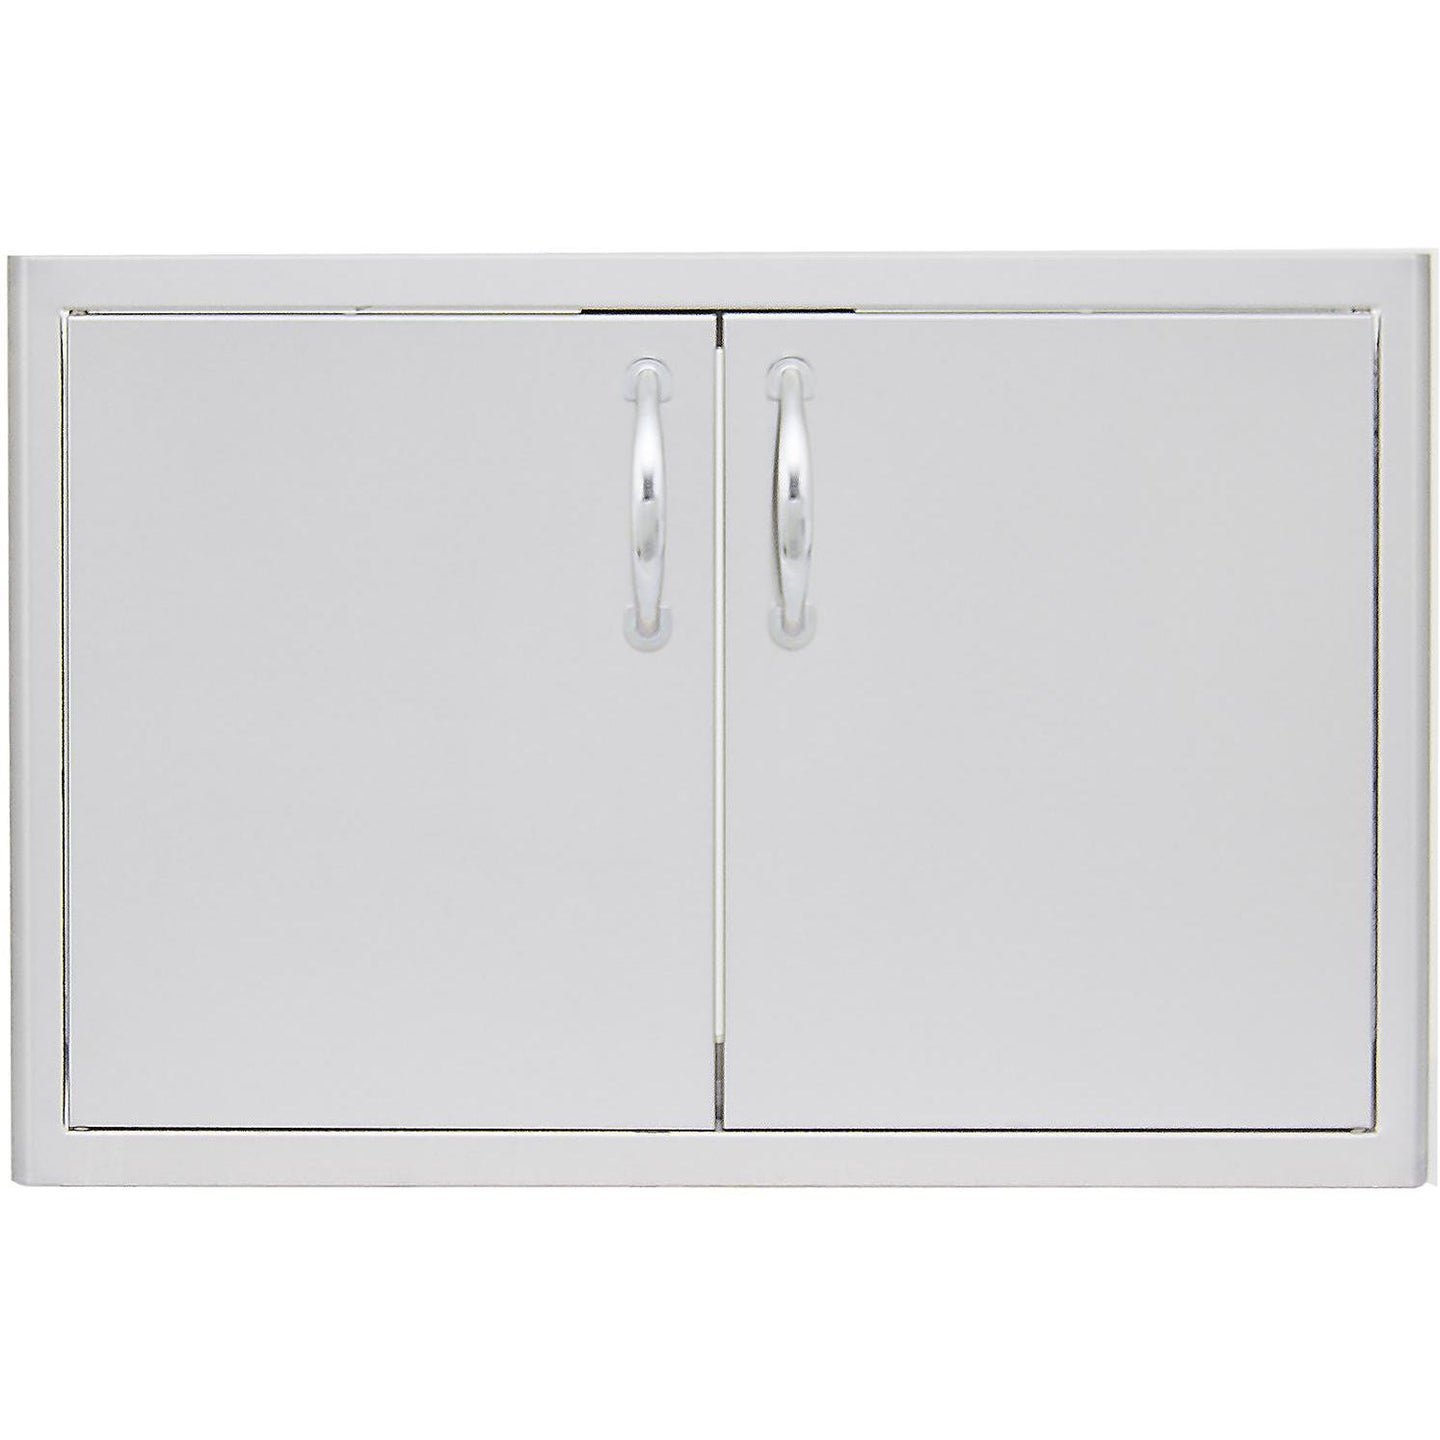 Blaze 40-Inch Double Access Door With Paper Towel Holder - BLZ-AD40-R